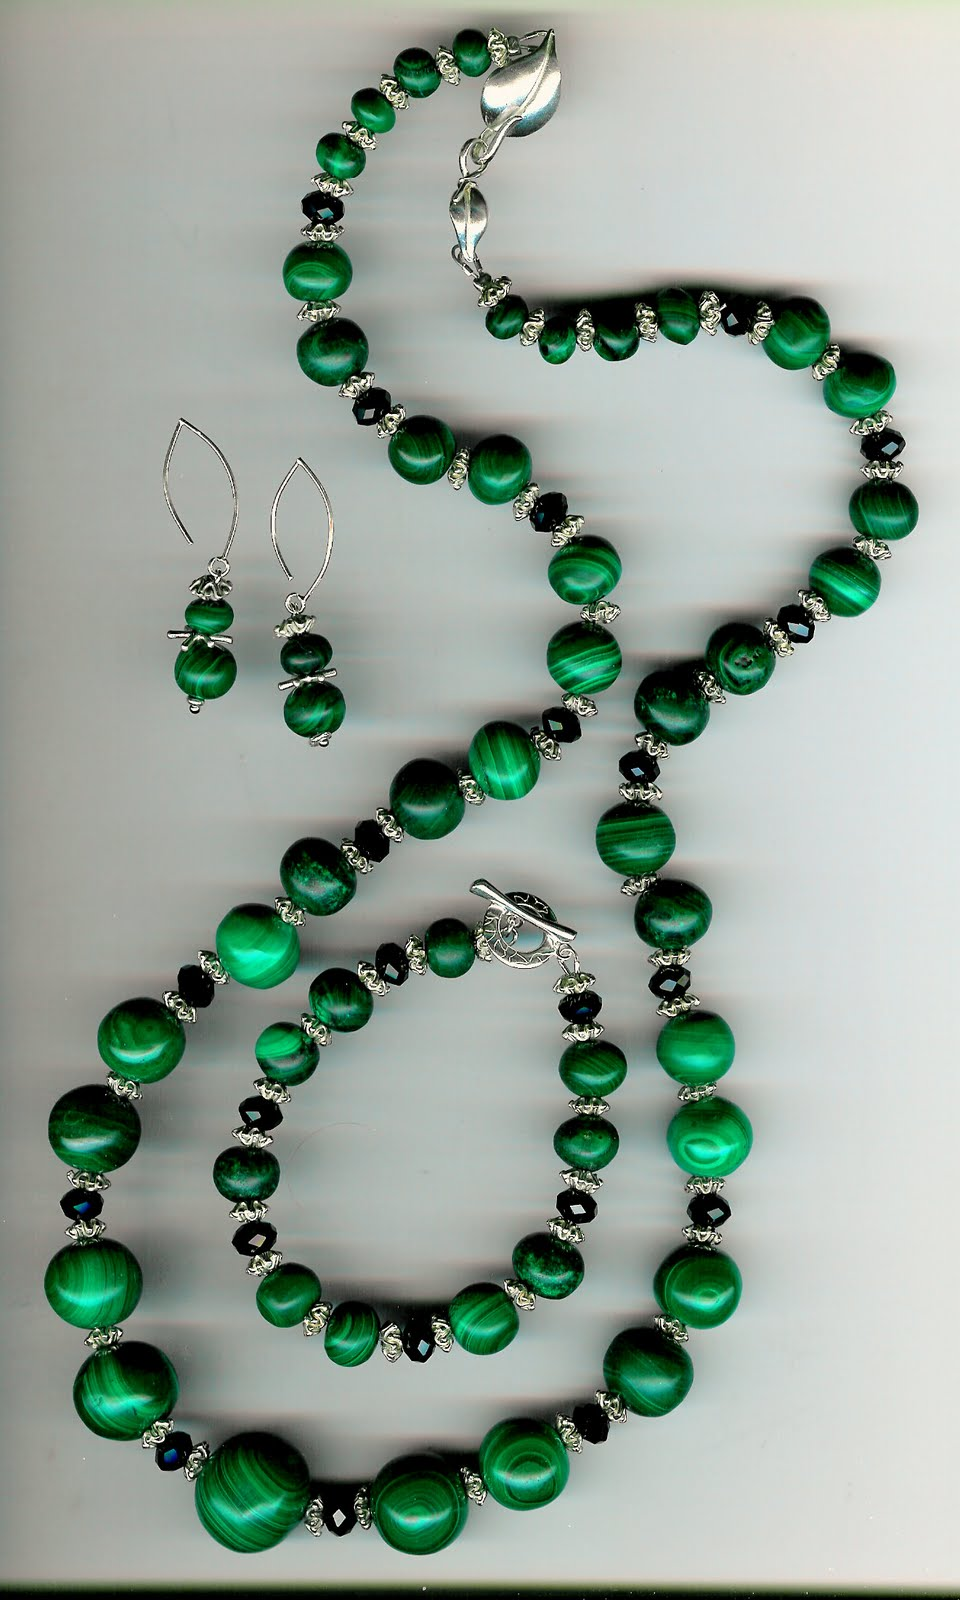 205. Malachite, Crystals with Karen Hill Thai Sterling Silver with Bracelet + Earrings